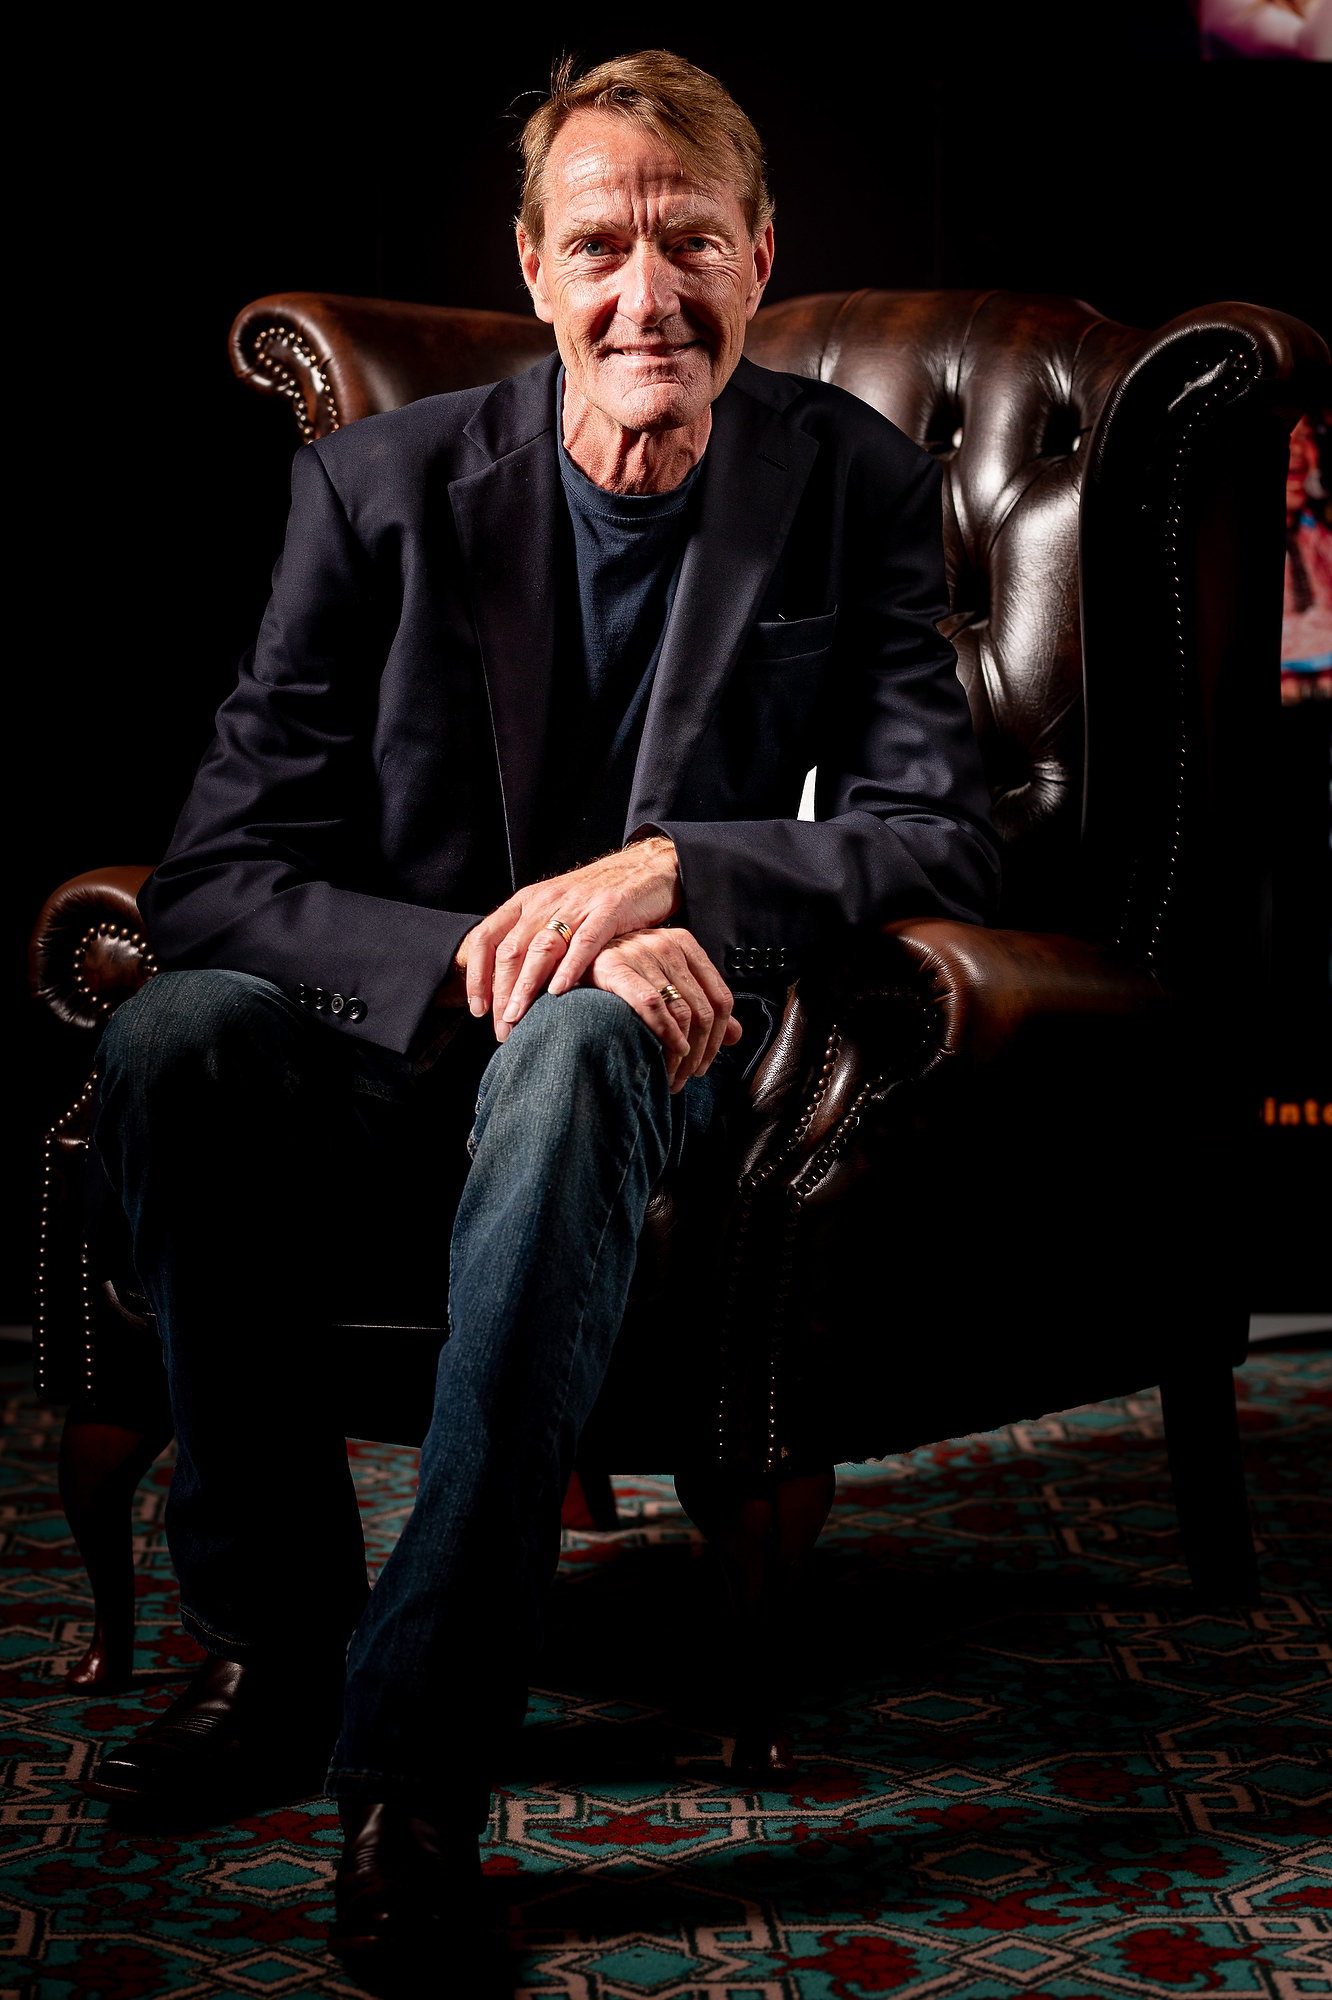 Jack Reacher author Lee Child on why he never plots his